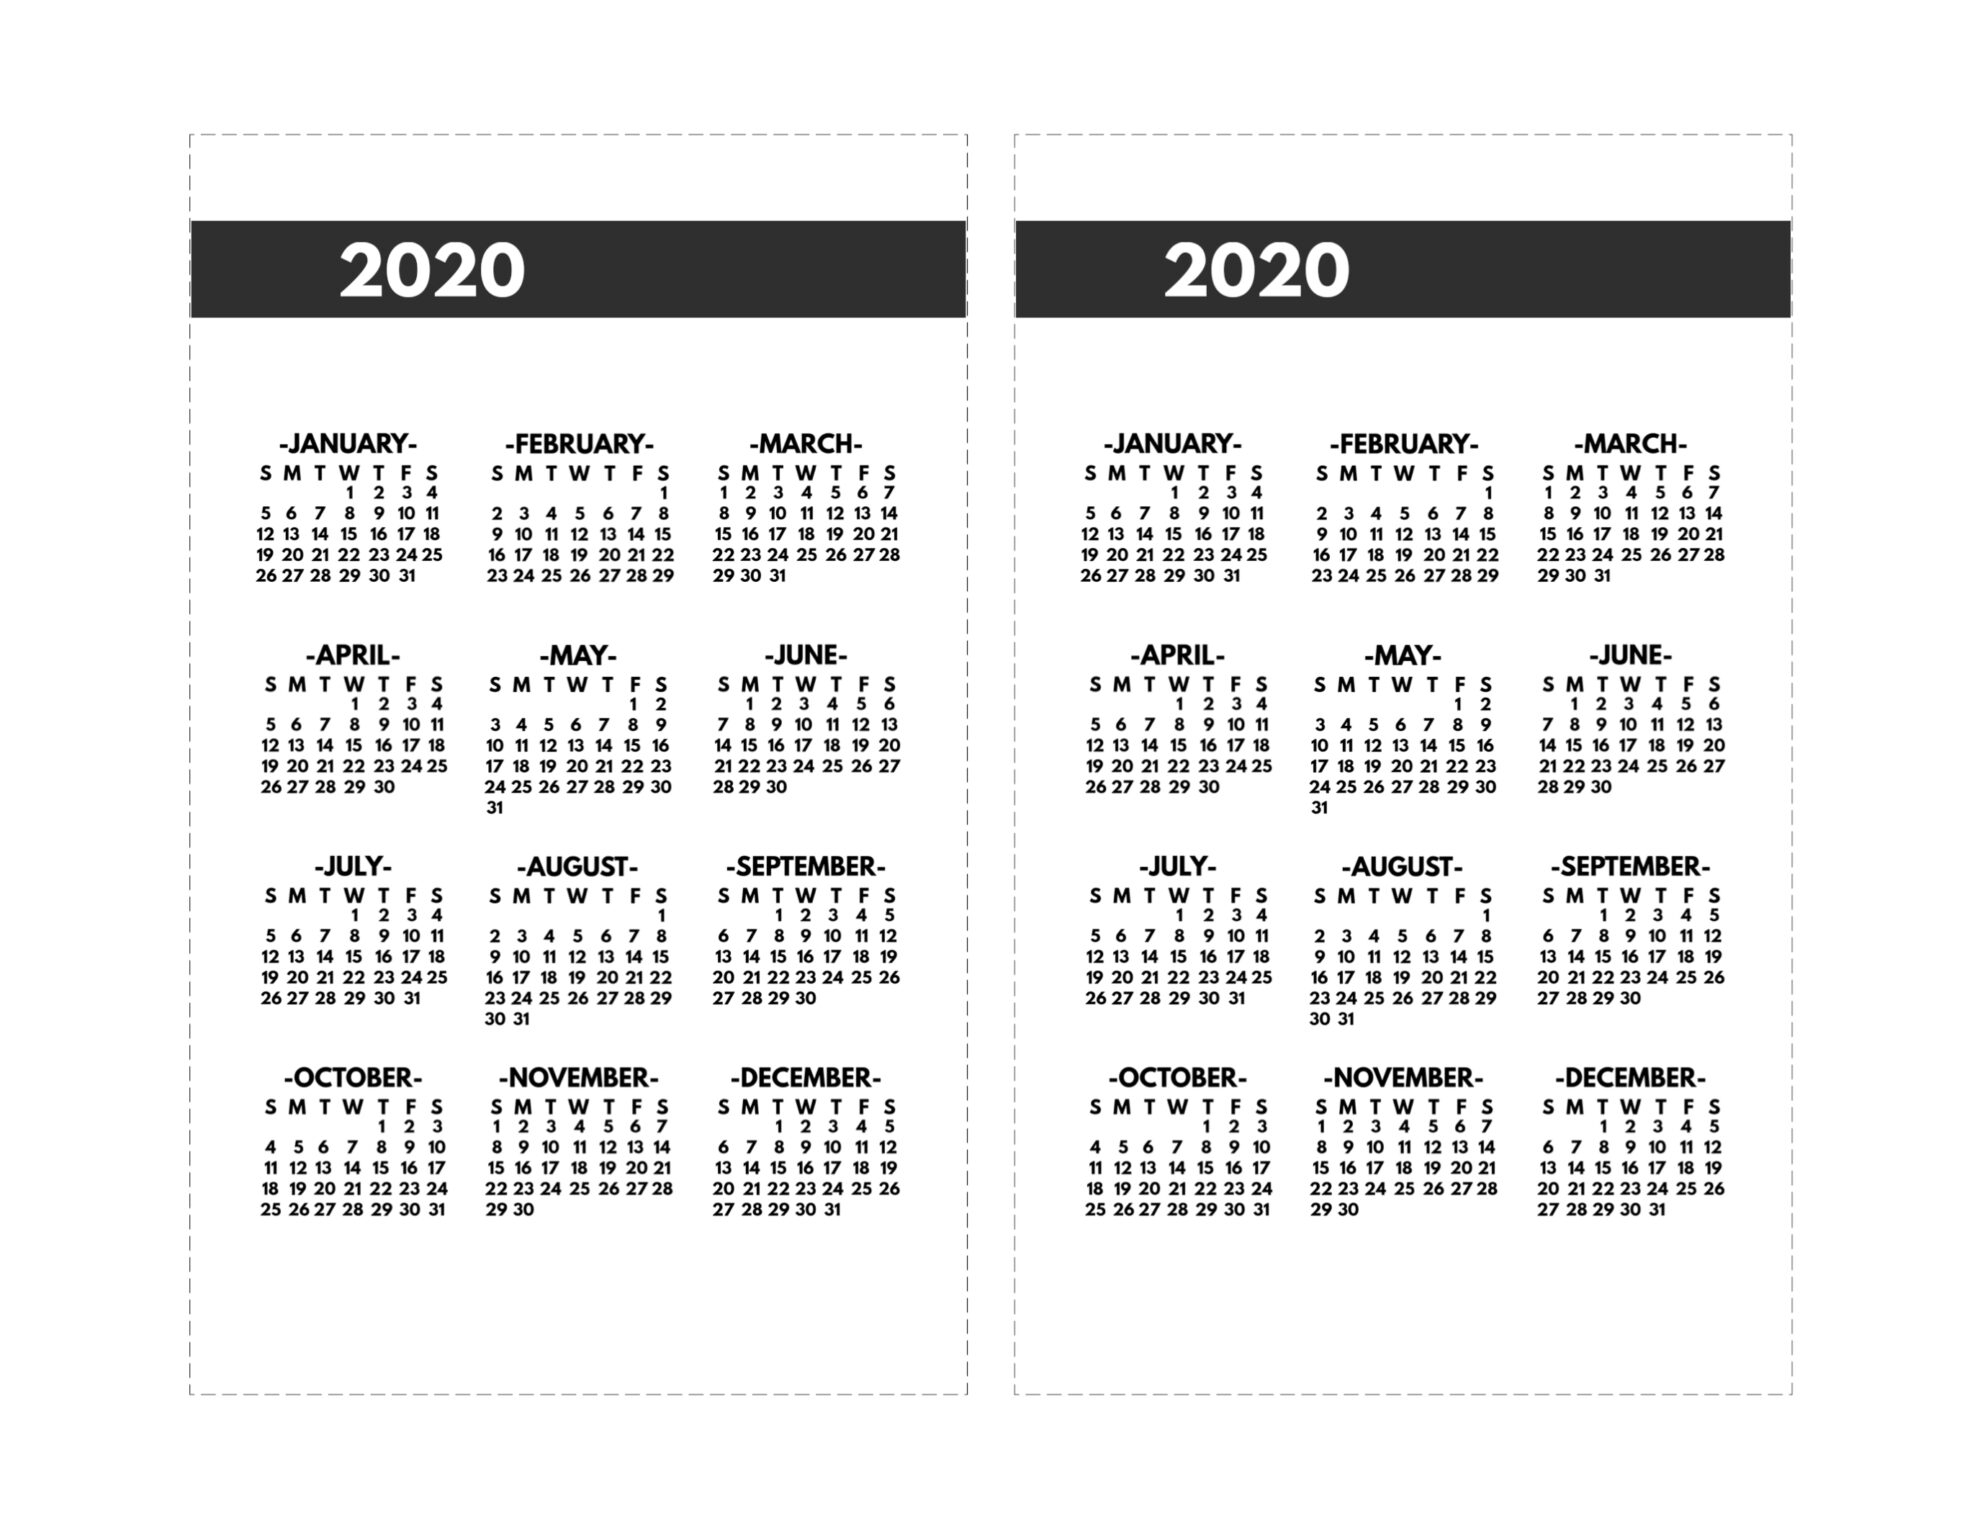 2020 Printable One Page Year At A Glance Calendar | Paper regarding Year At A Glance Calendar 2020 8.5 X 11